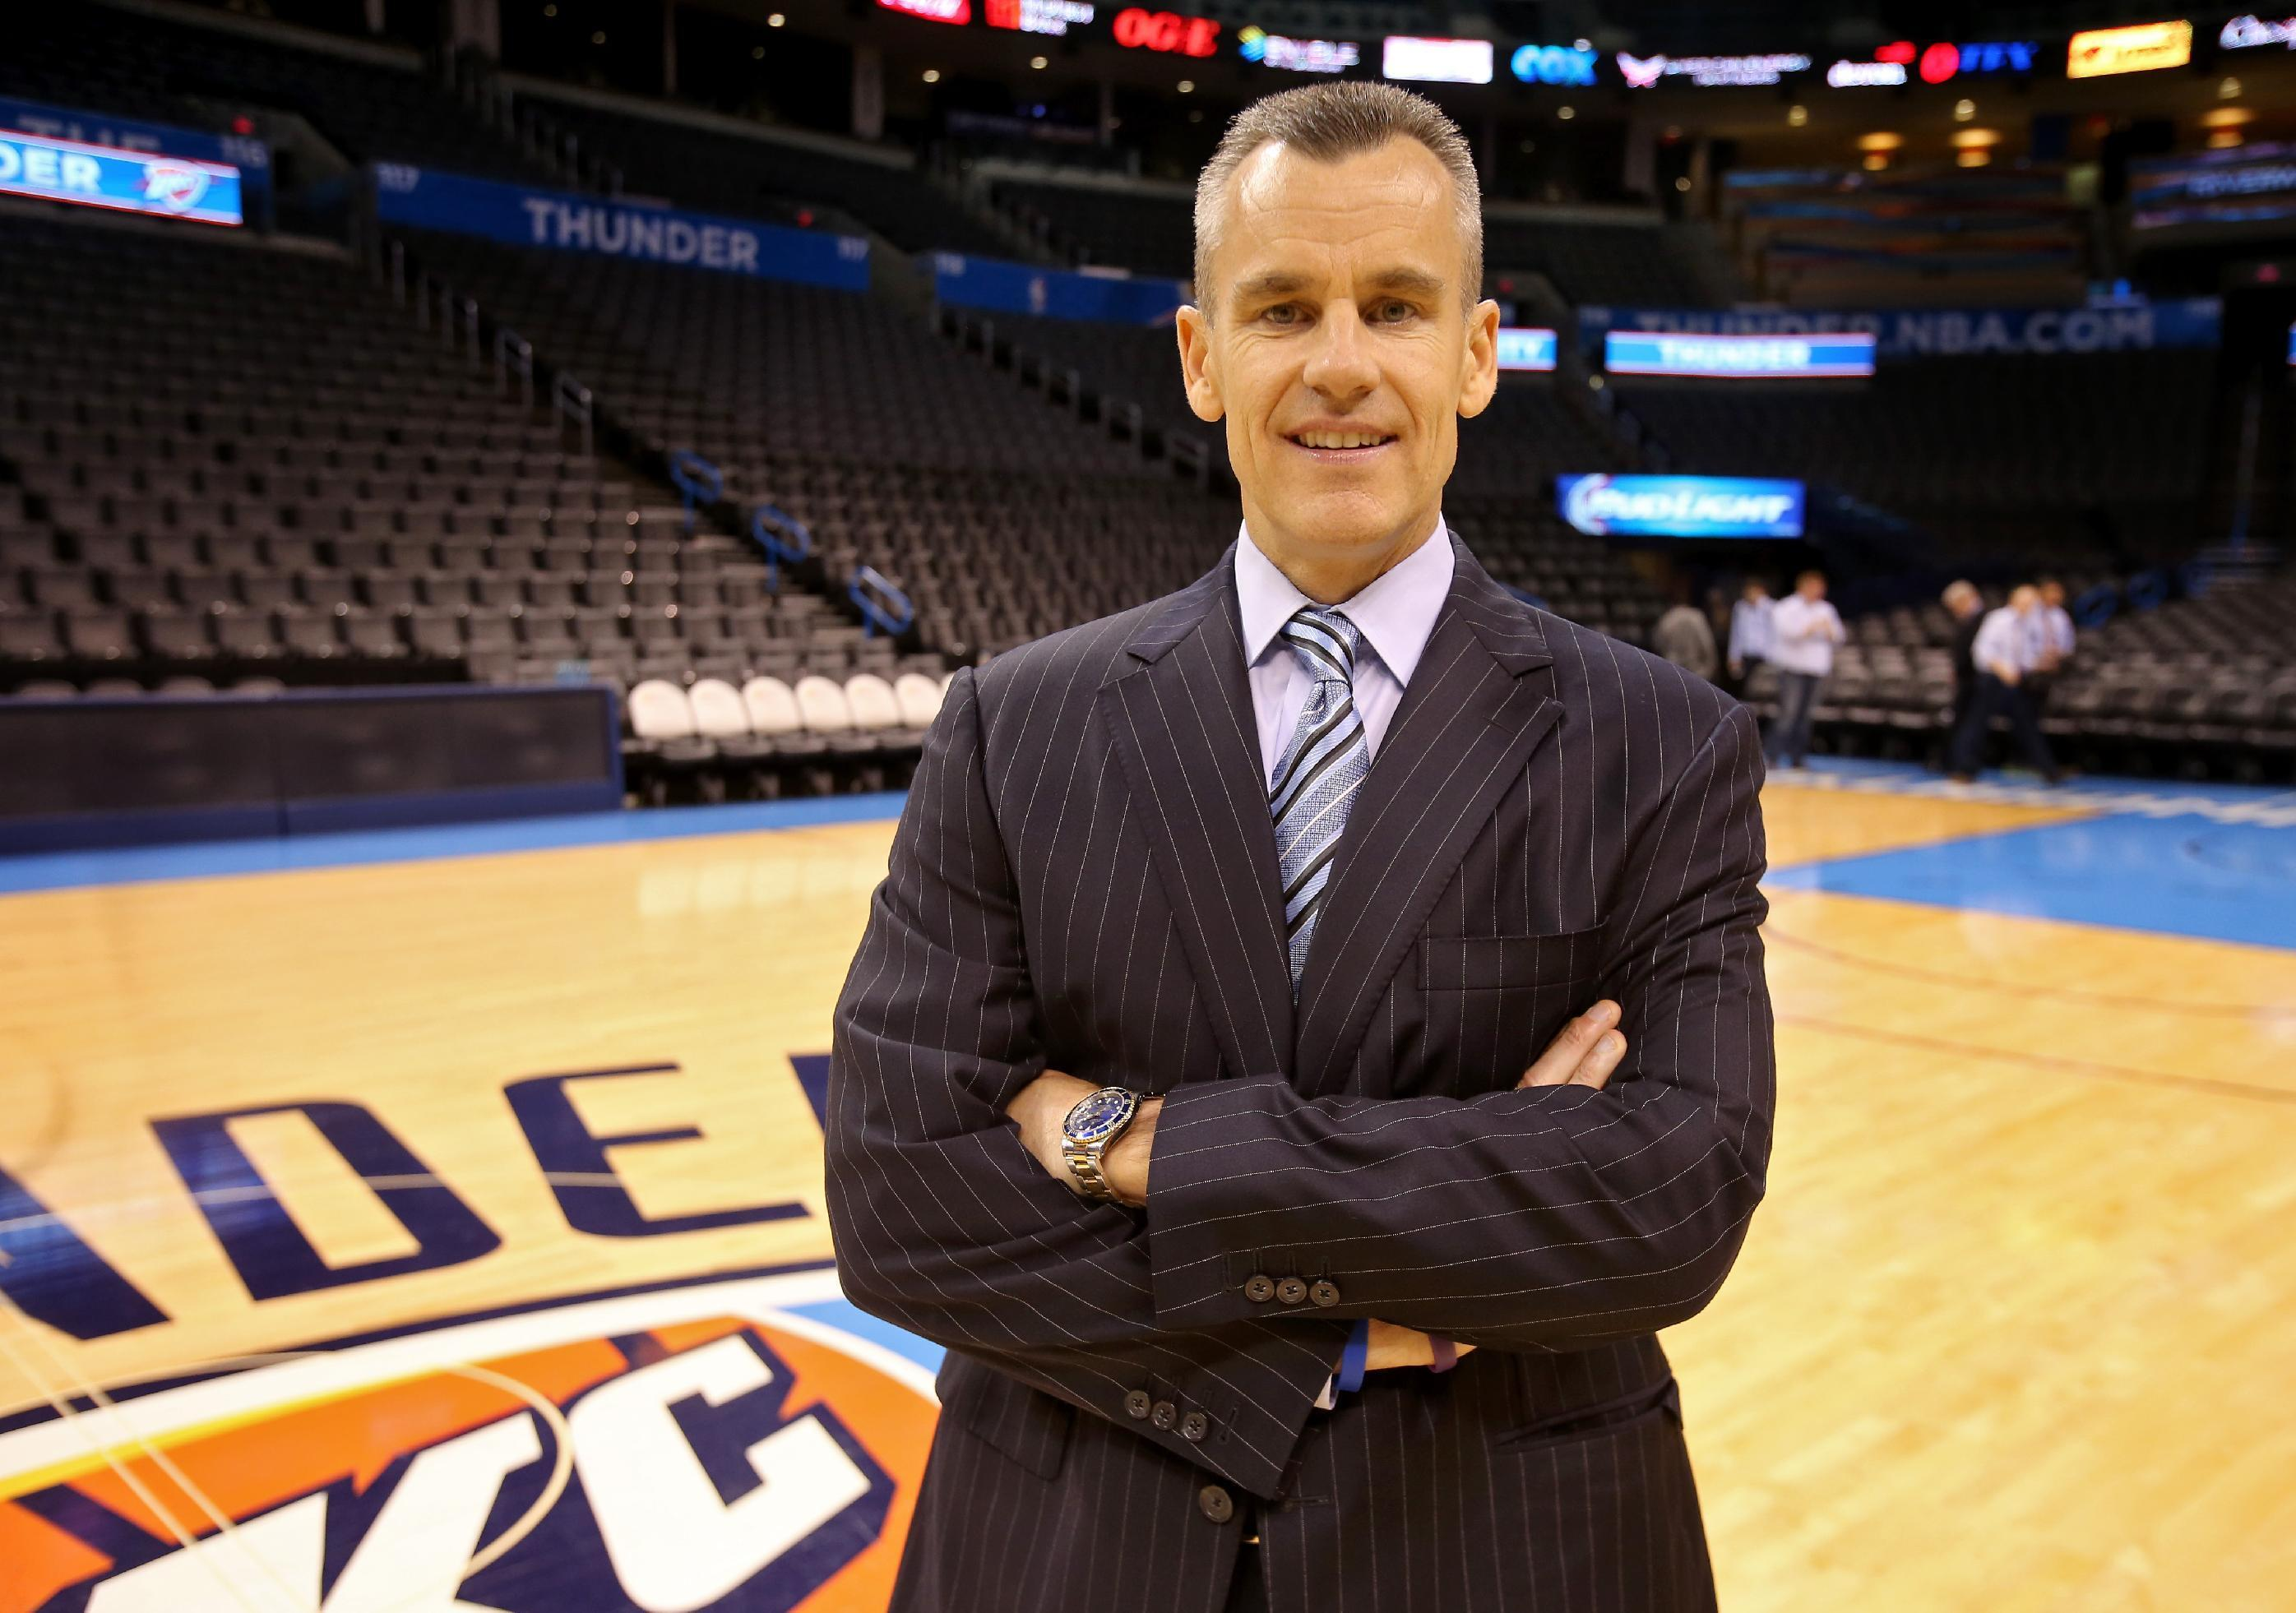 Thunder introduce new coach Billy Donovan